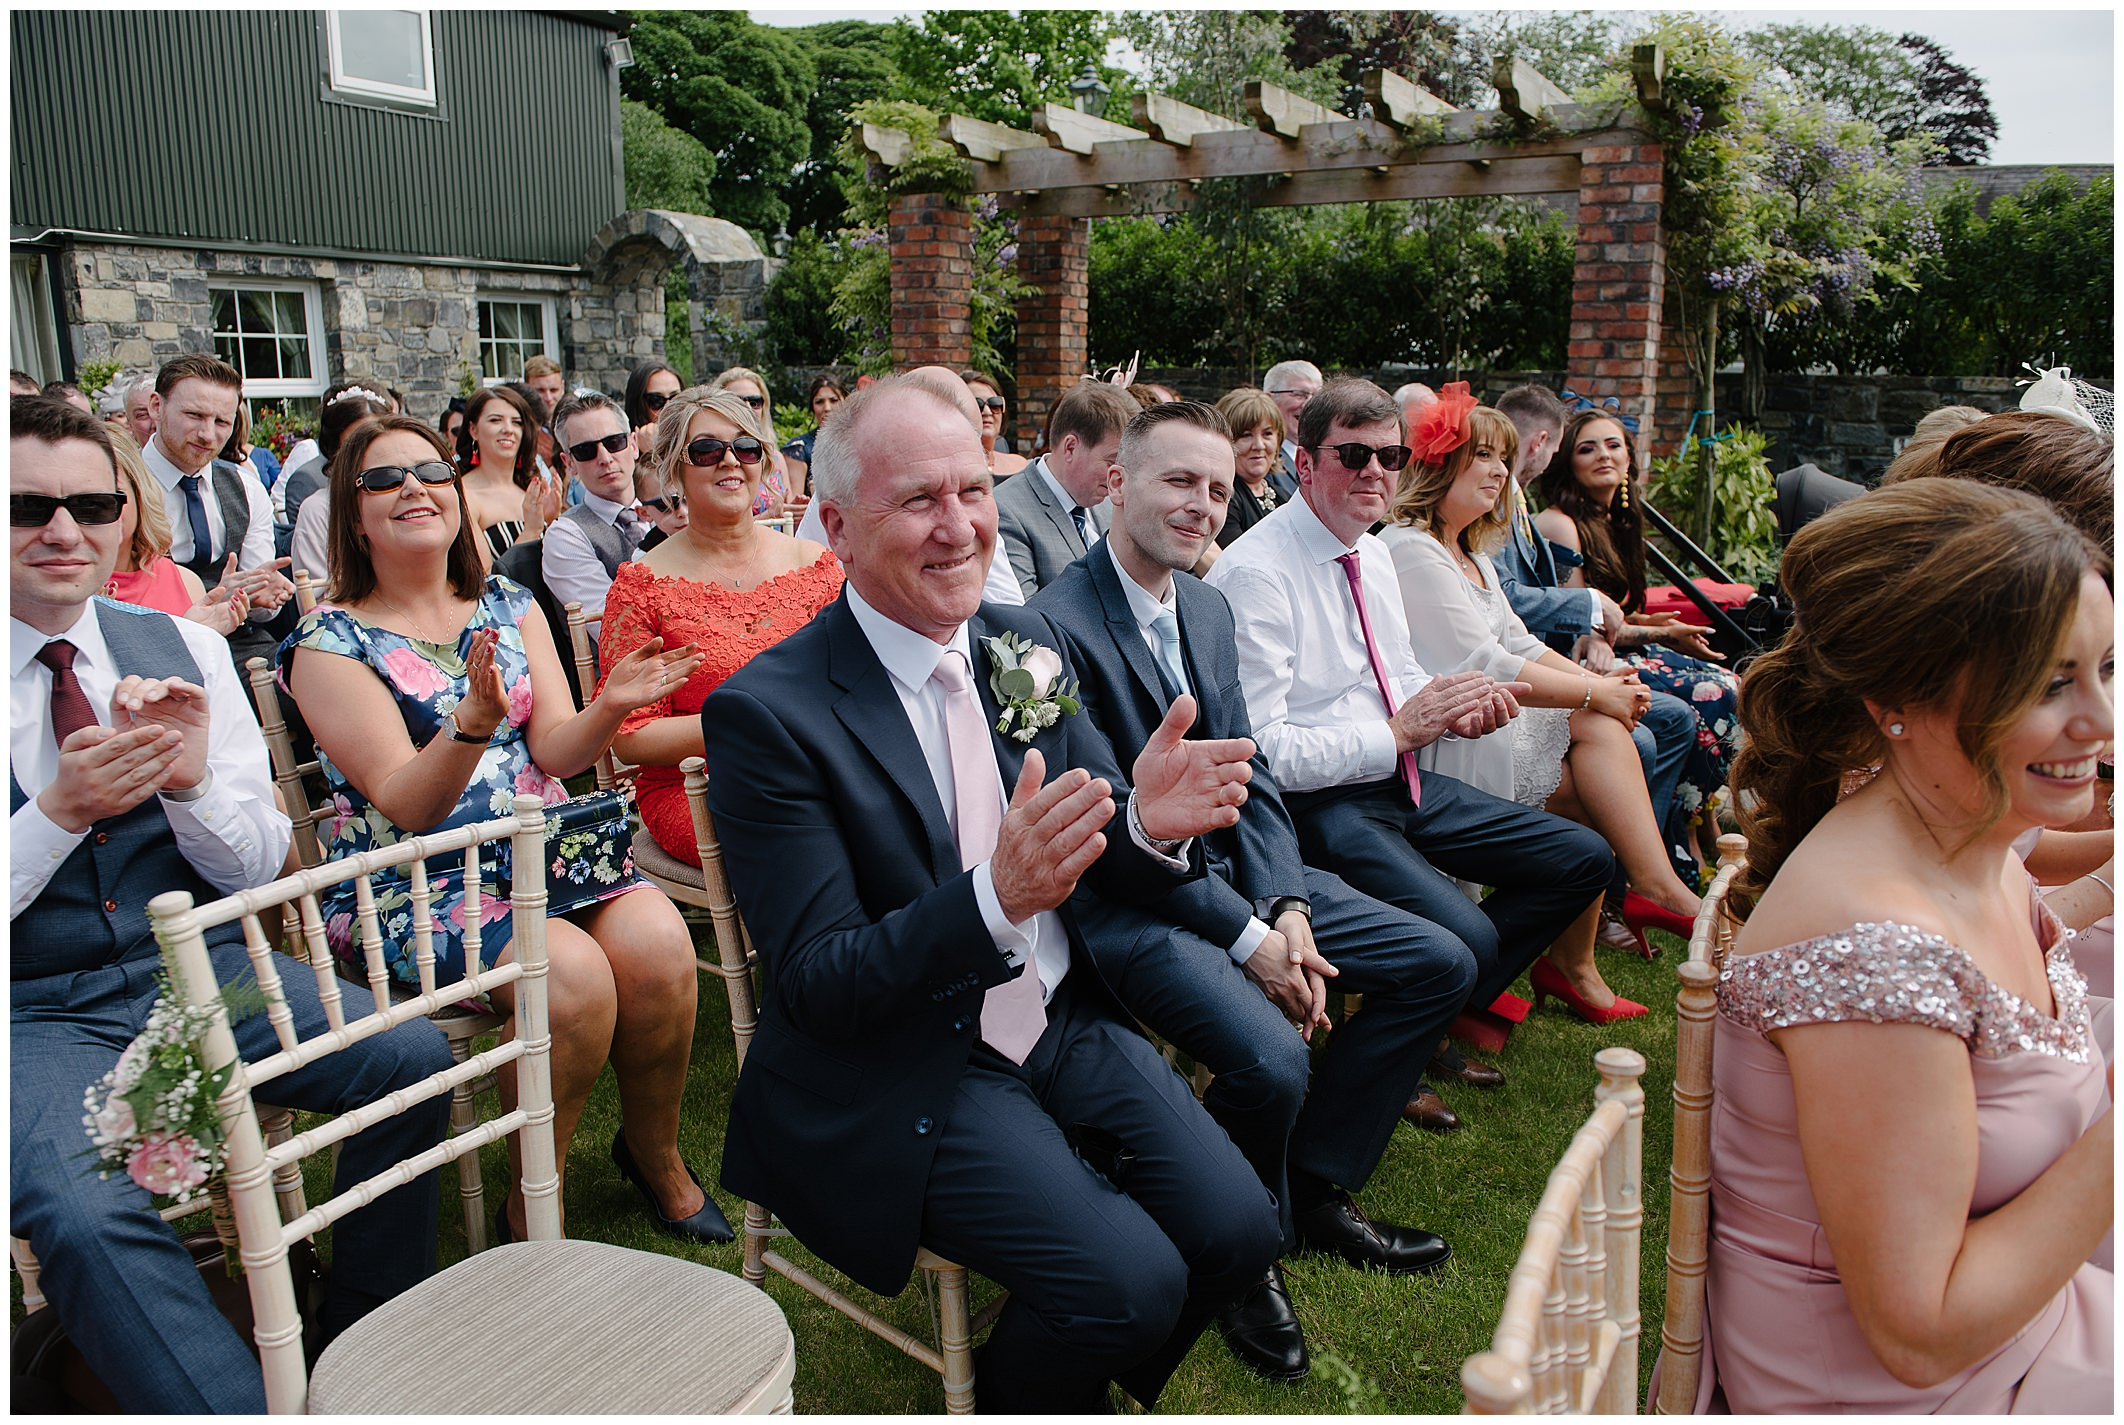 ballymagarvey-village-wedding-jude-browne-photography-095.jpg